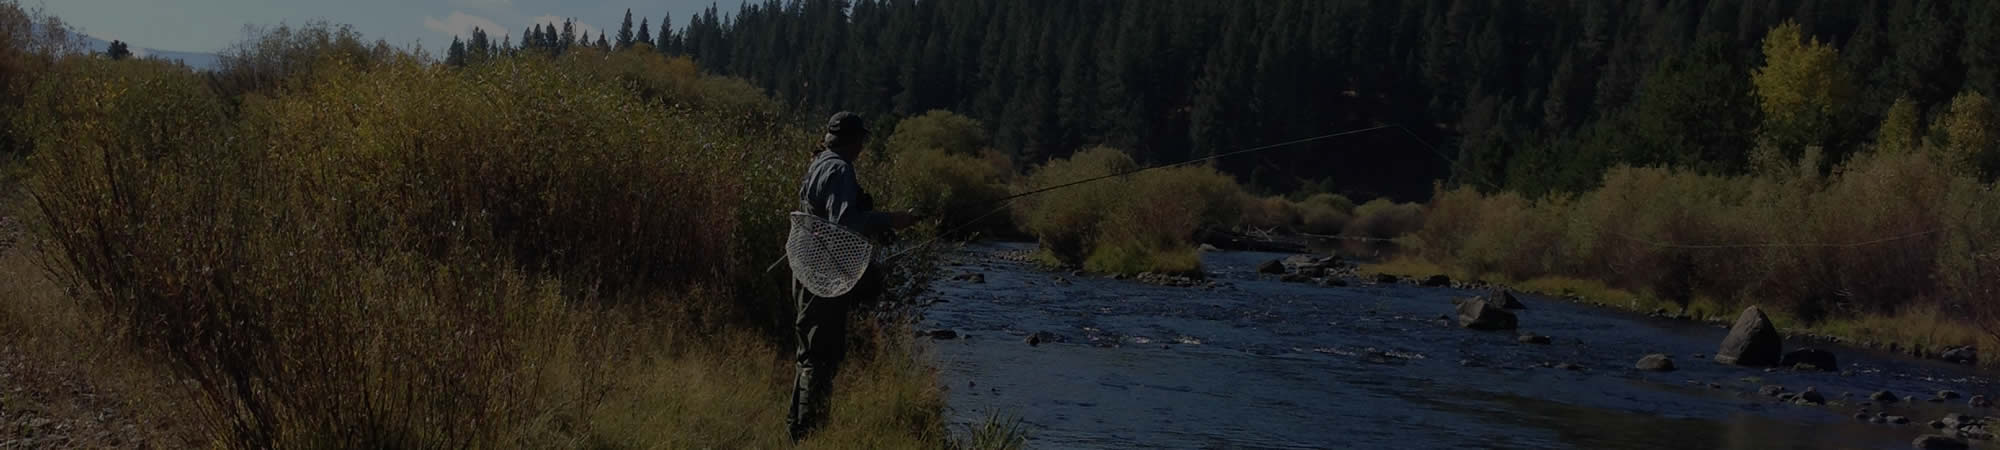 A Fly Fisherman on the river